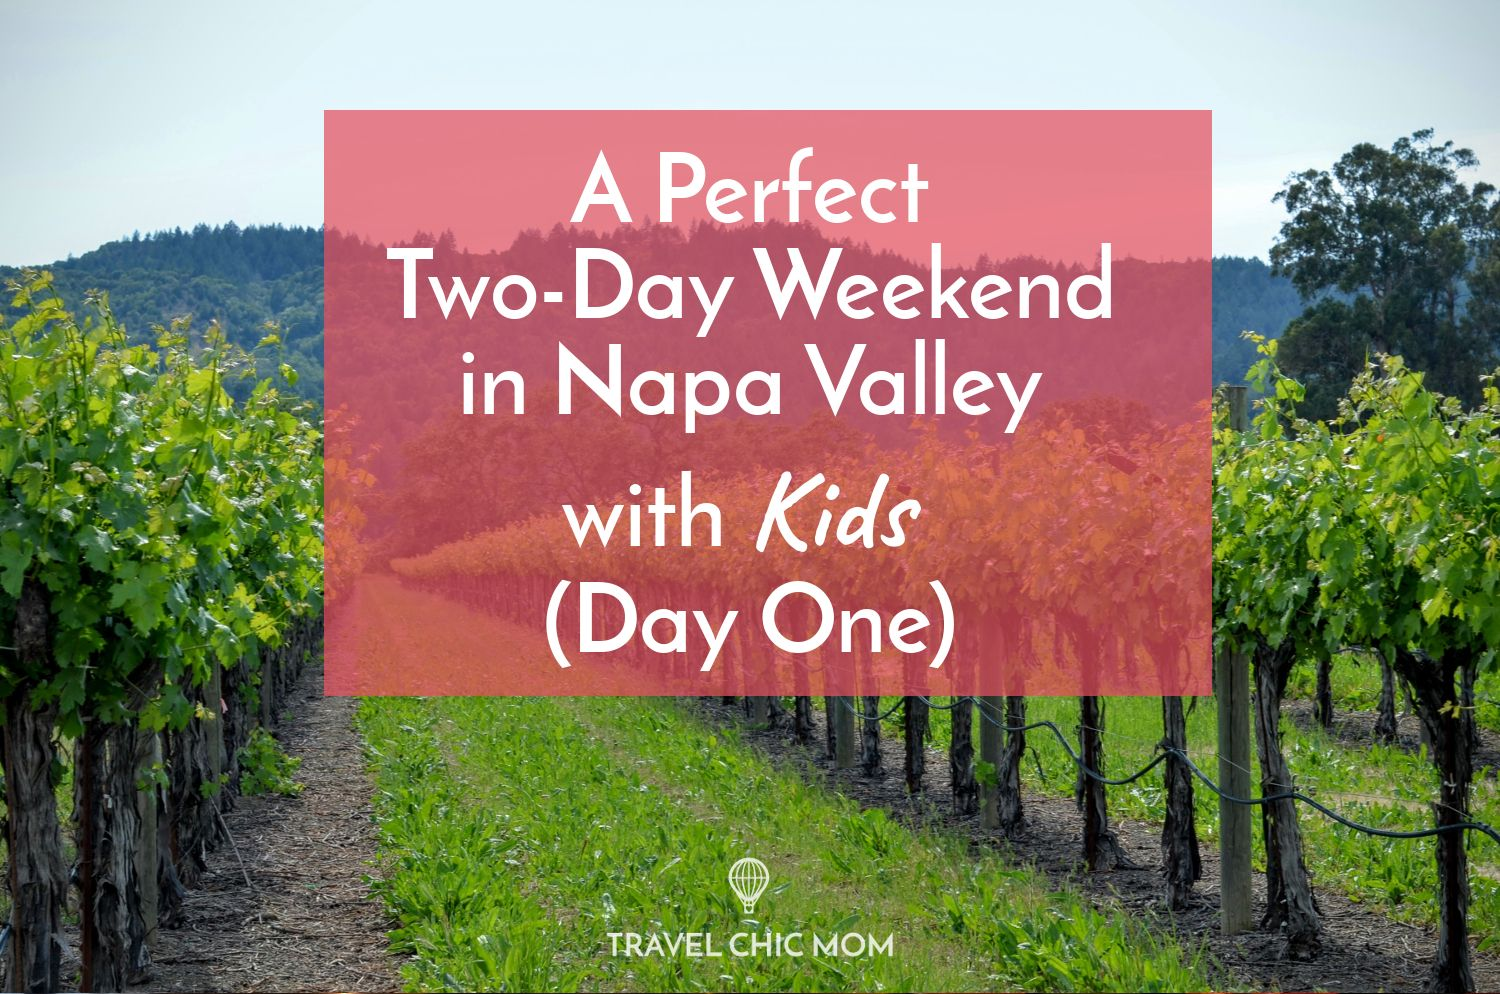 A Perfect Two-Day Weekend in Napa Valley with Kids (Day One